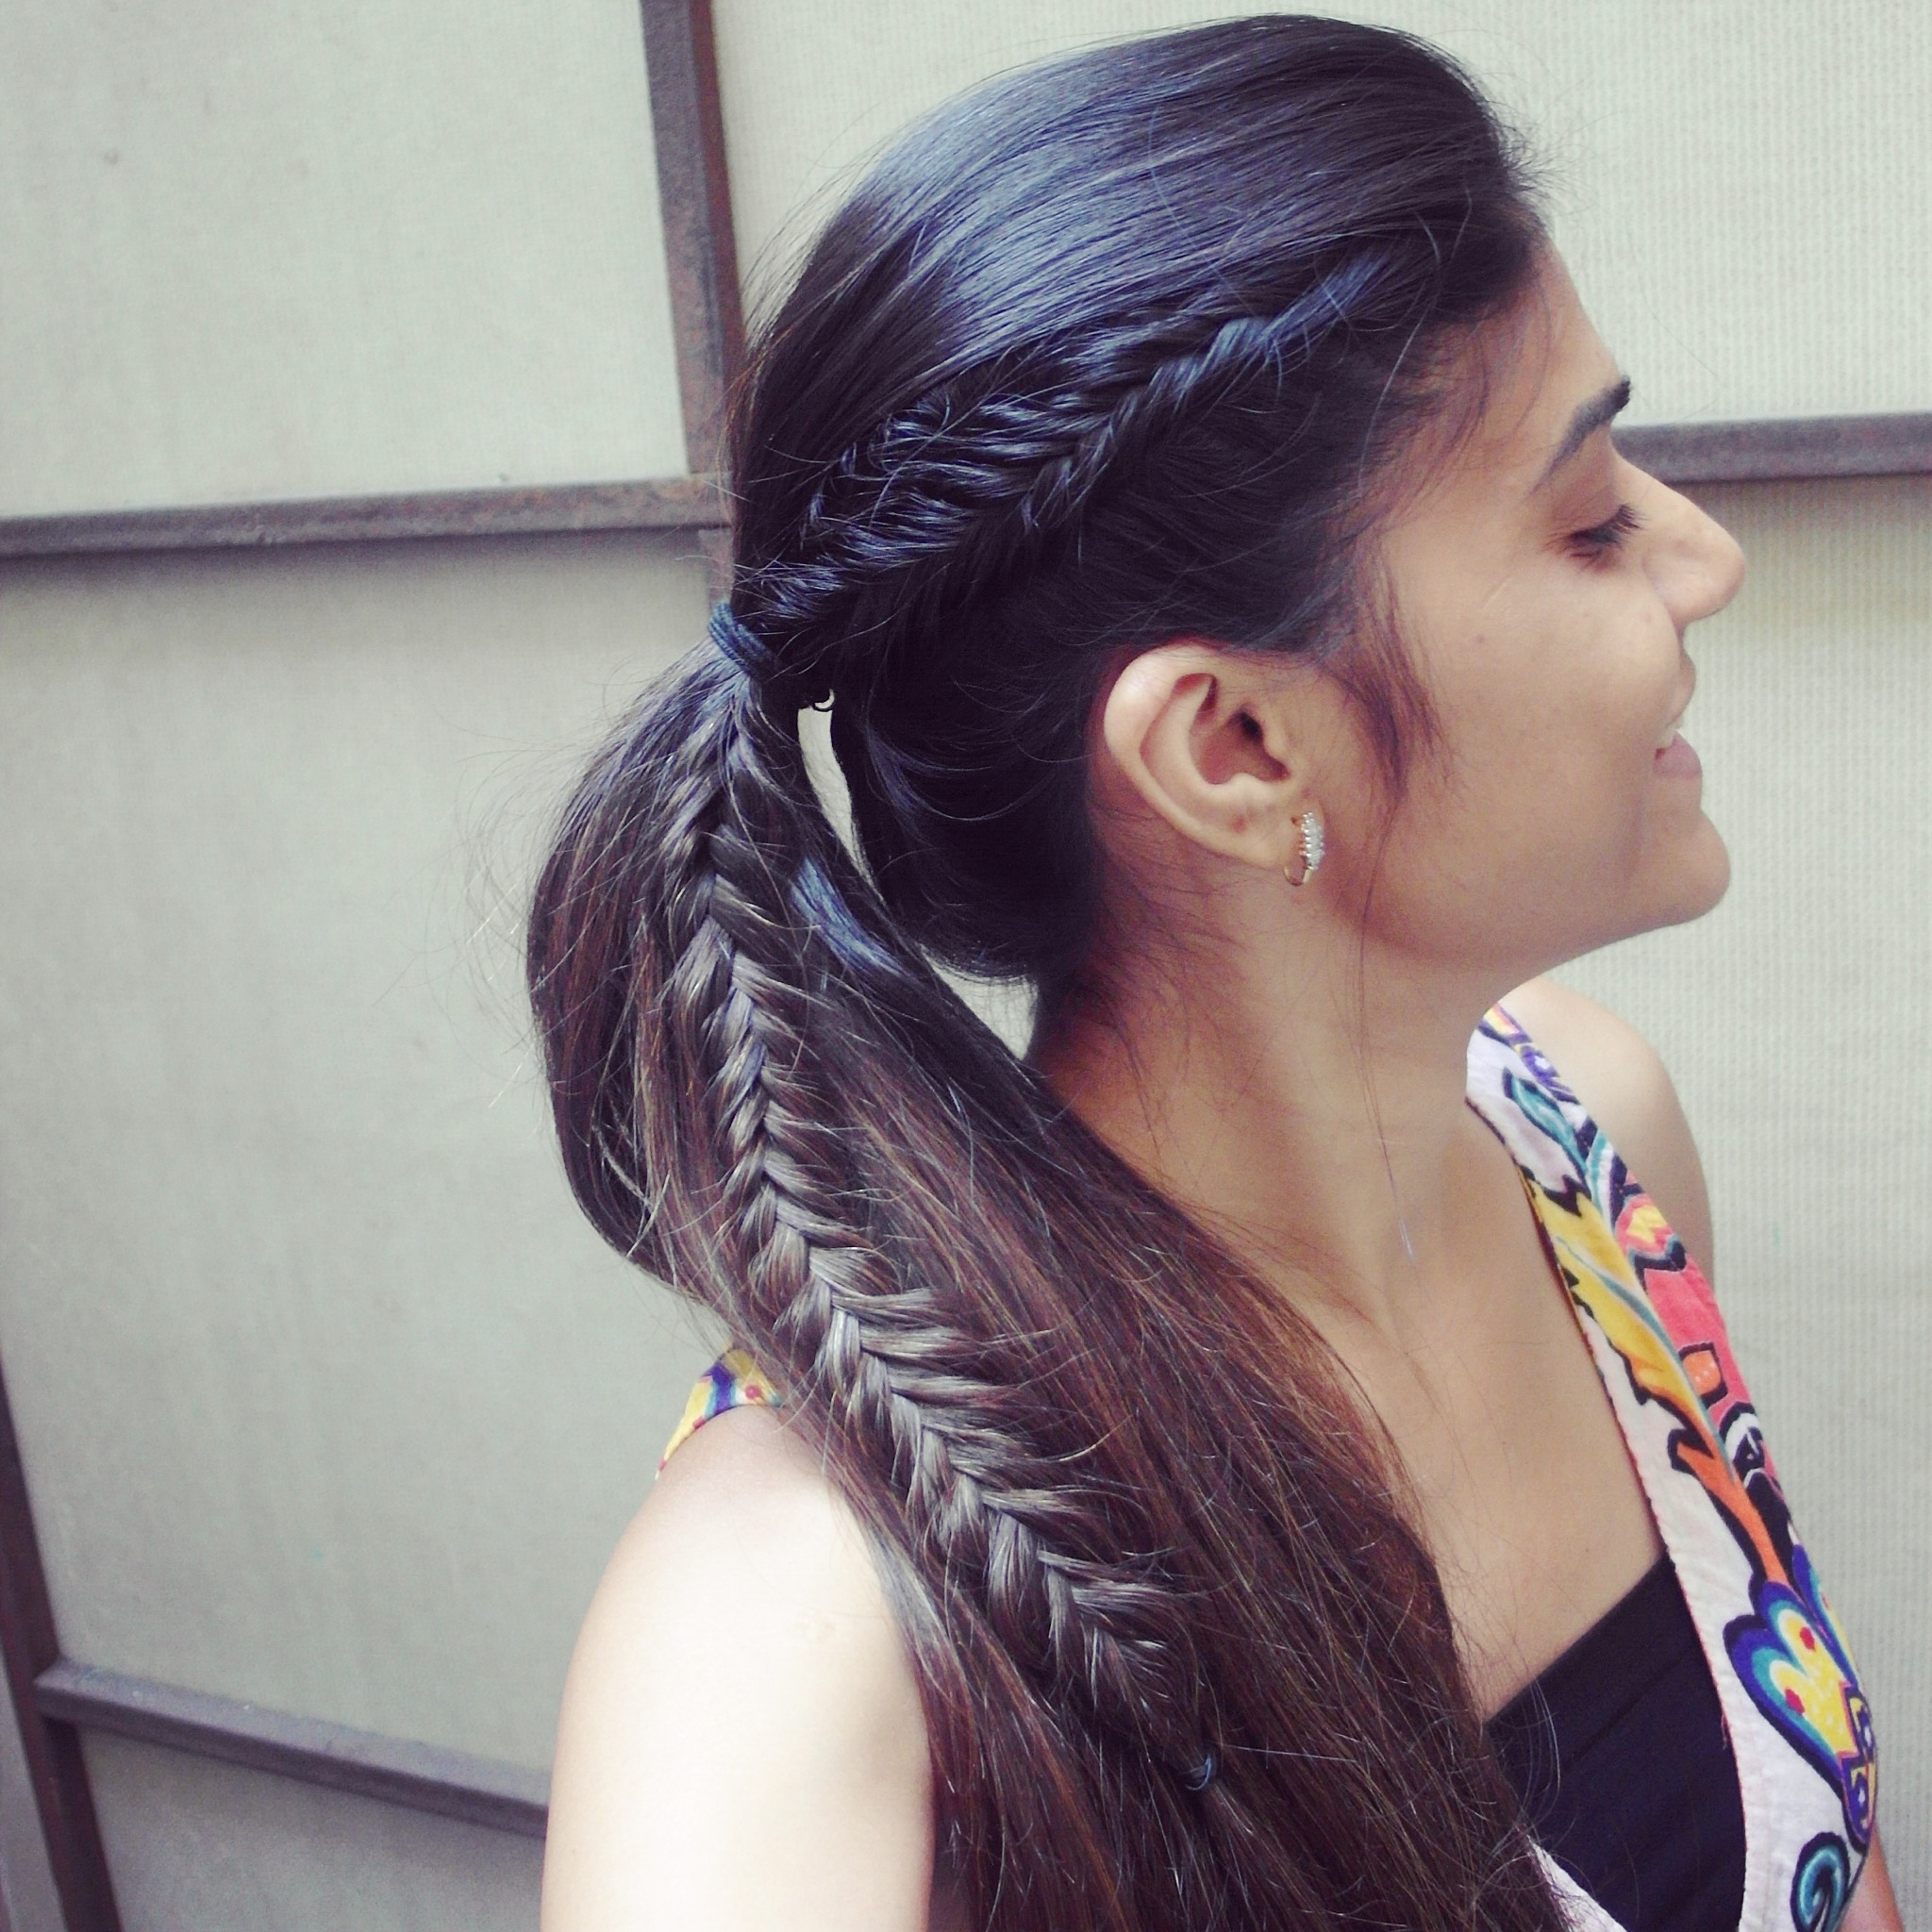 Tanvi Vayla » Fishtail Braid Into High Ponytail Pertaining To 2018 Fishtail Braid Ponytails (View 17 of 20)